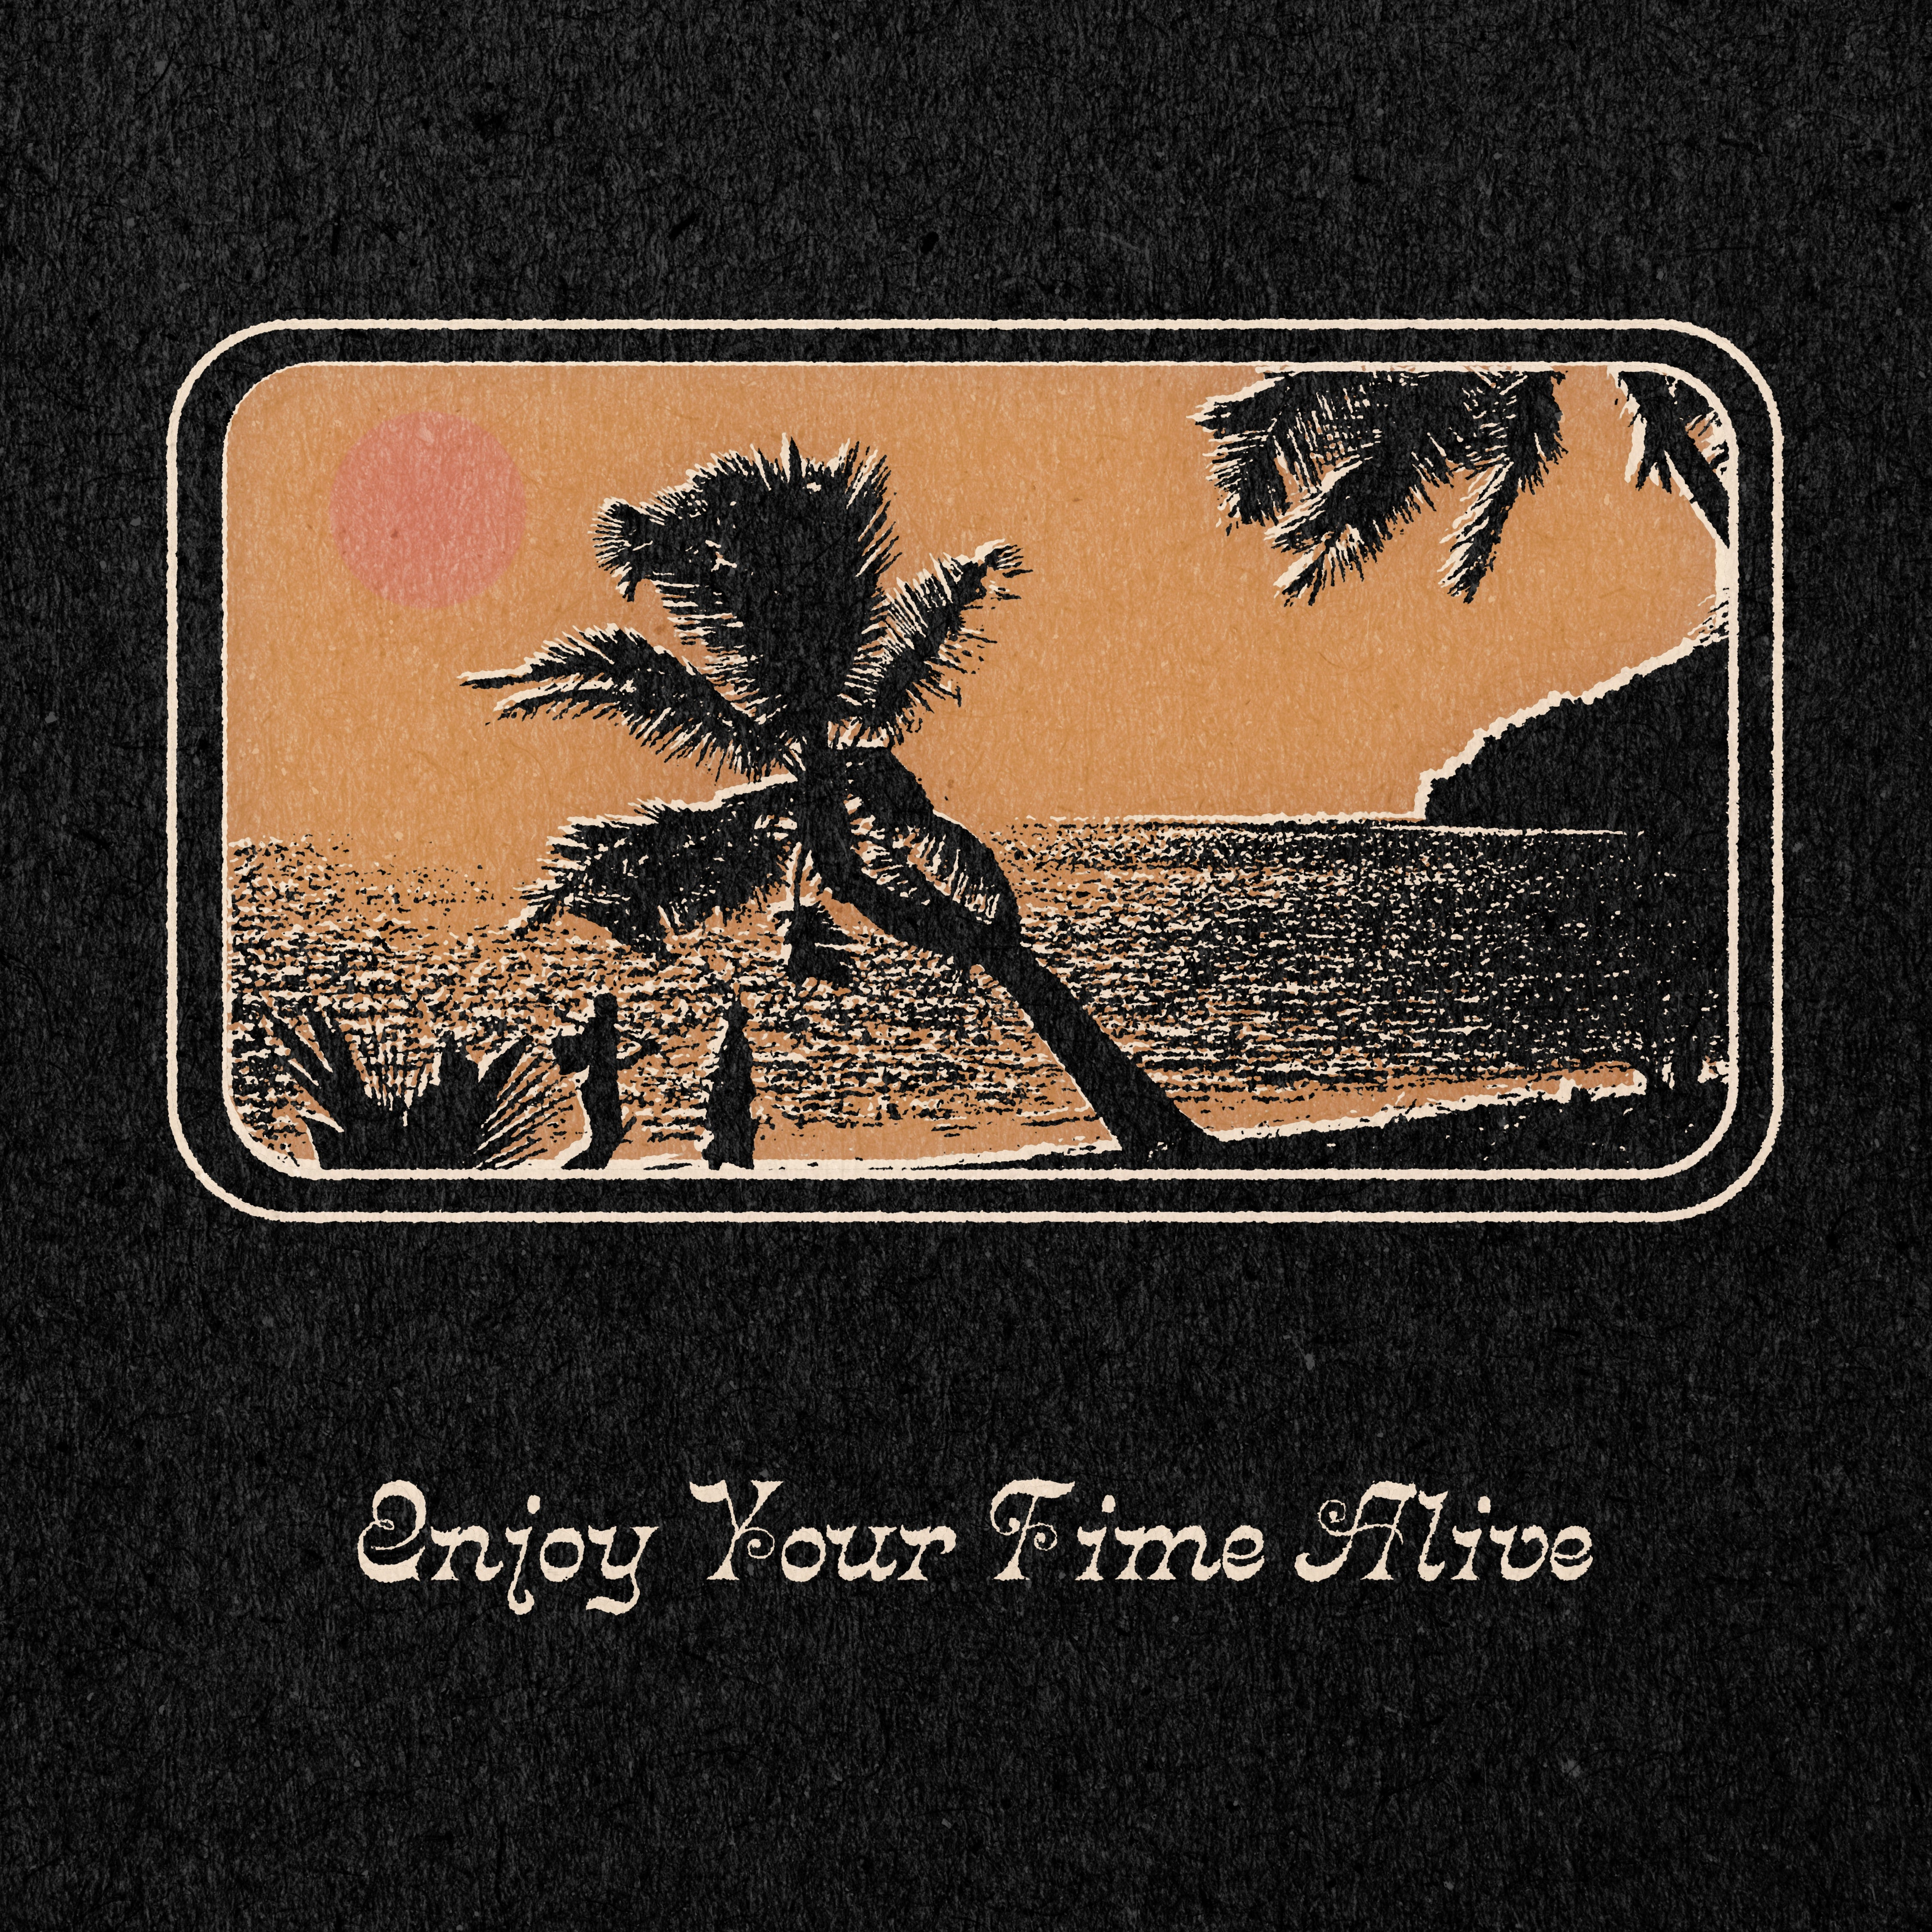 'Enjoy Your Time Alive' Print